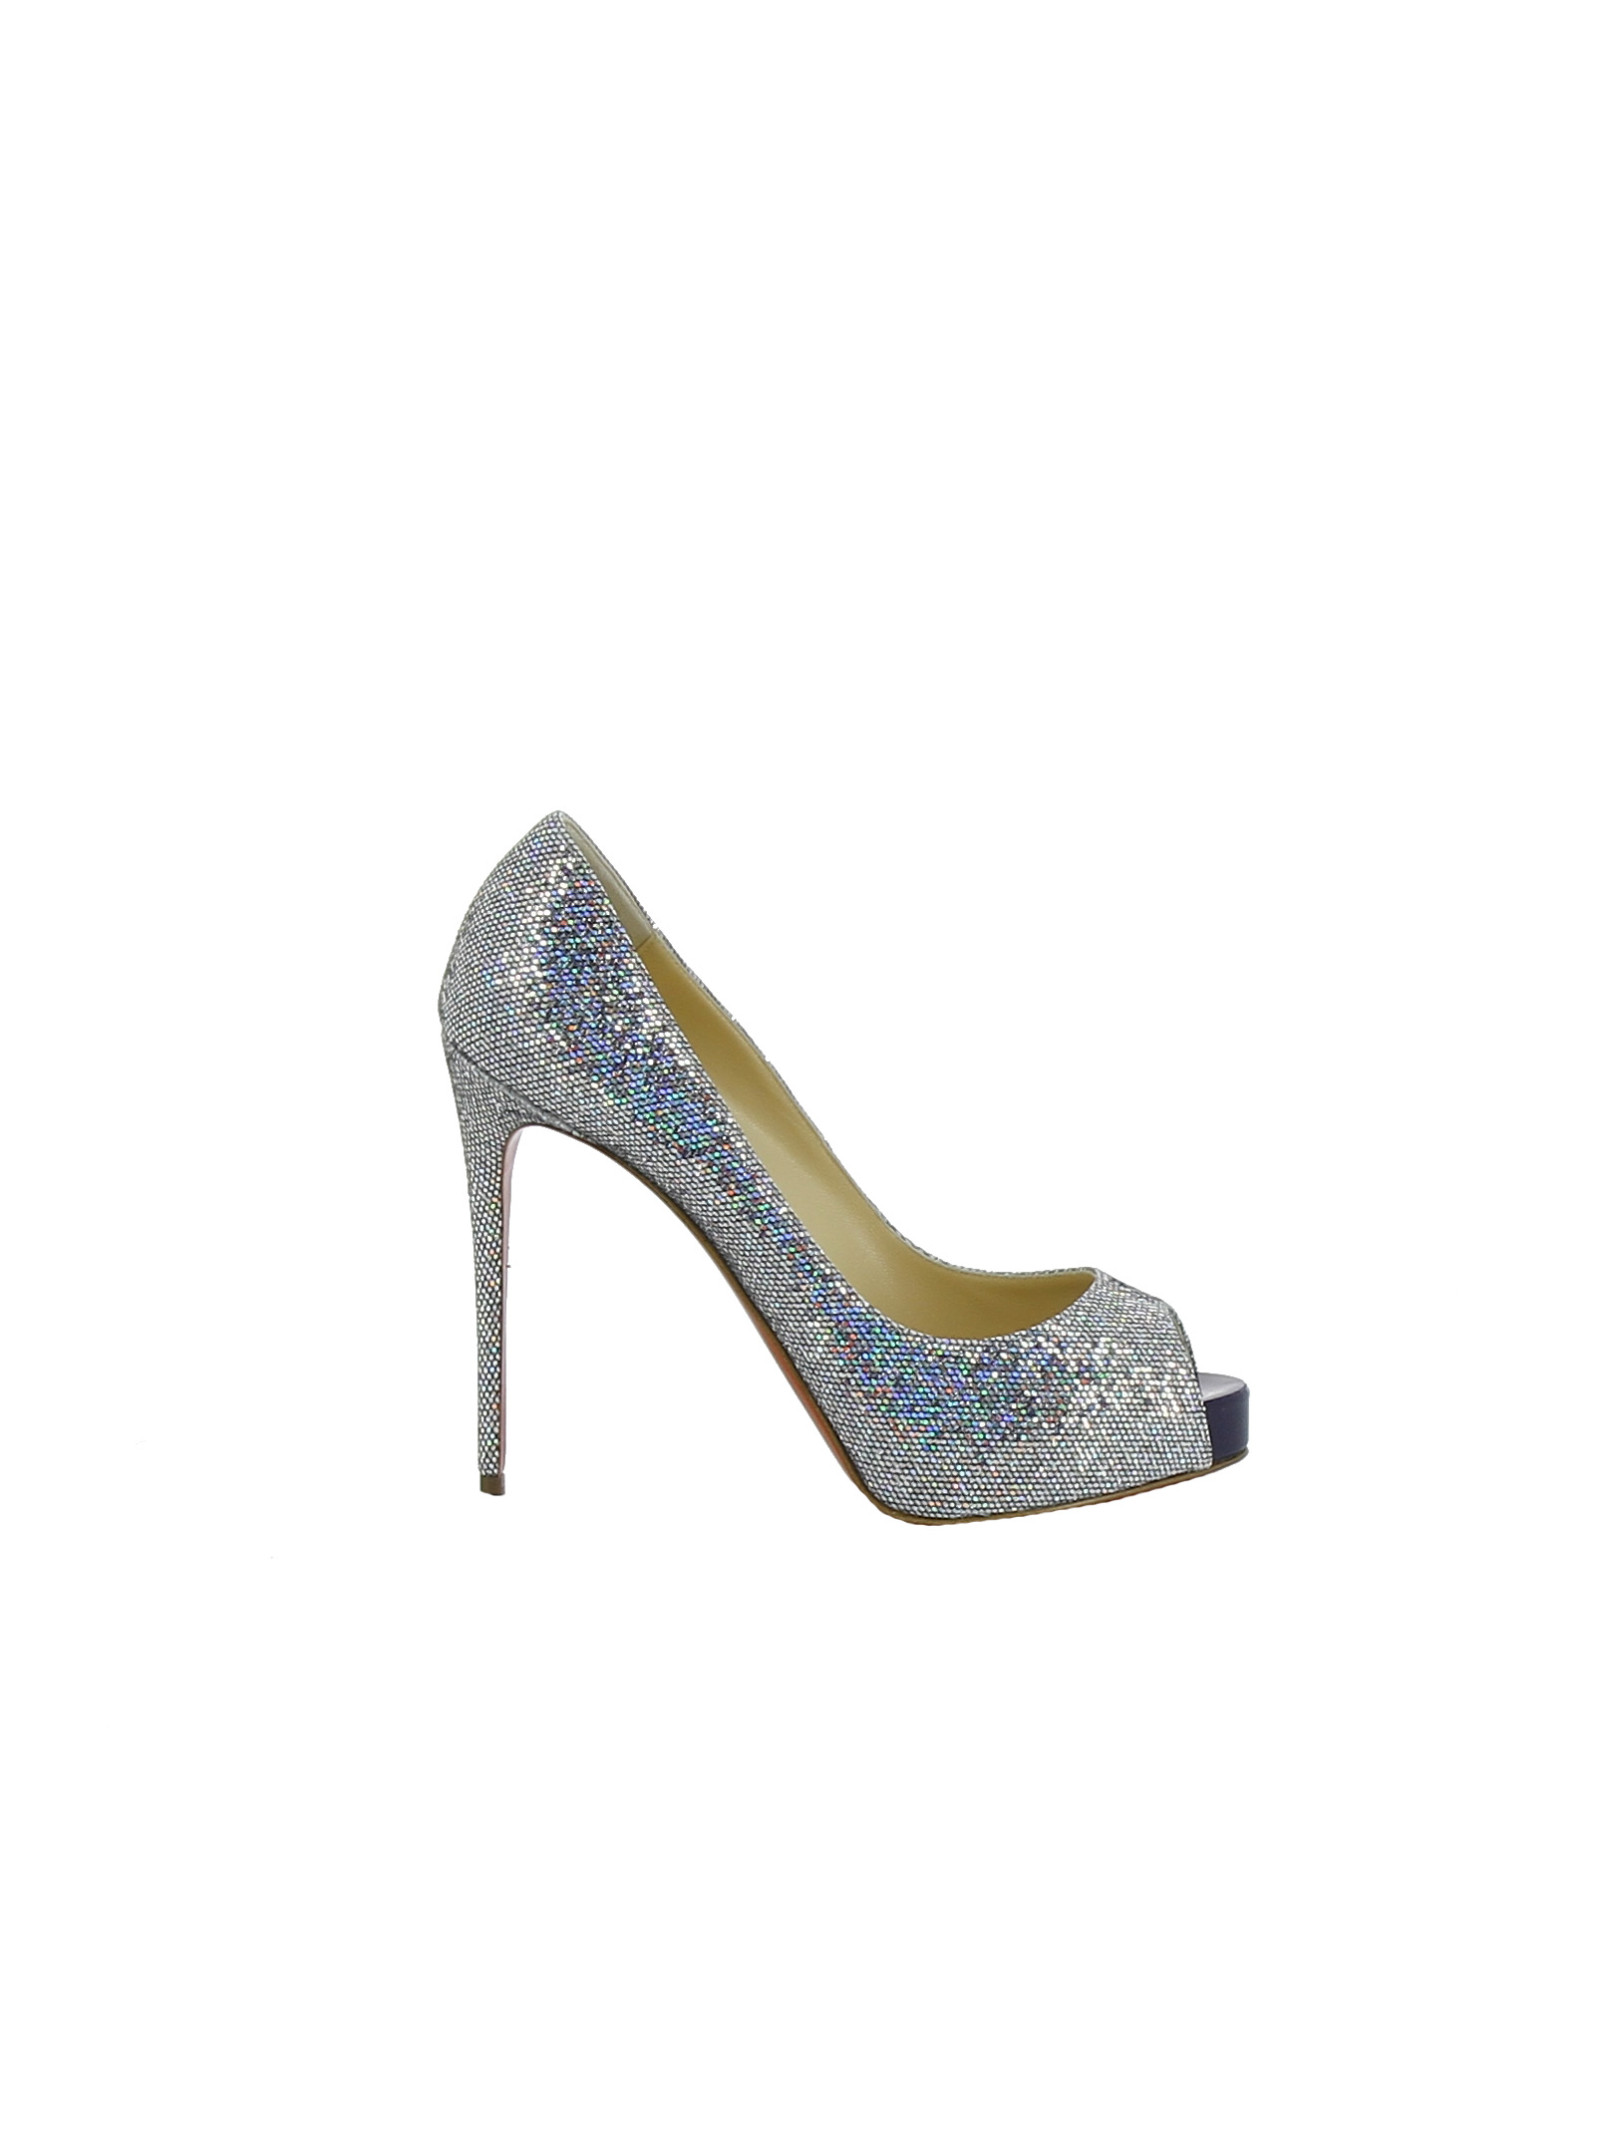 christian louboutin female christian louboutin new very prive 120 glitter platform pumps